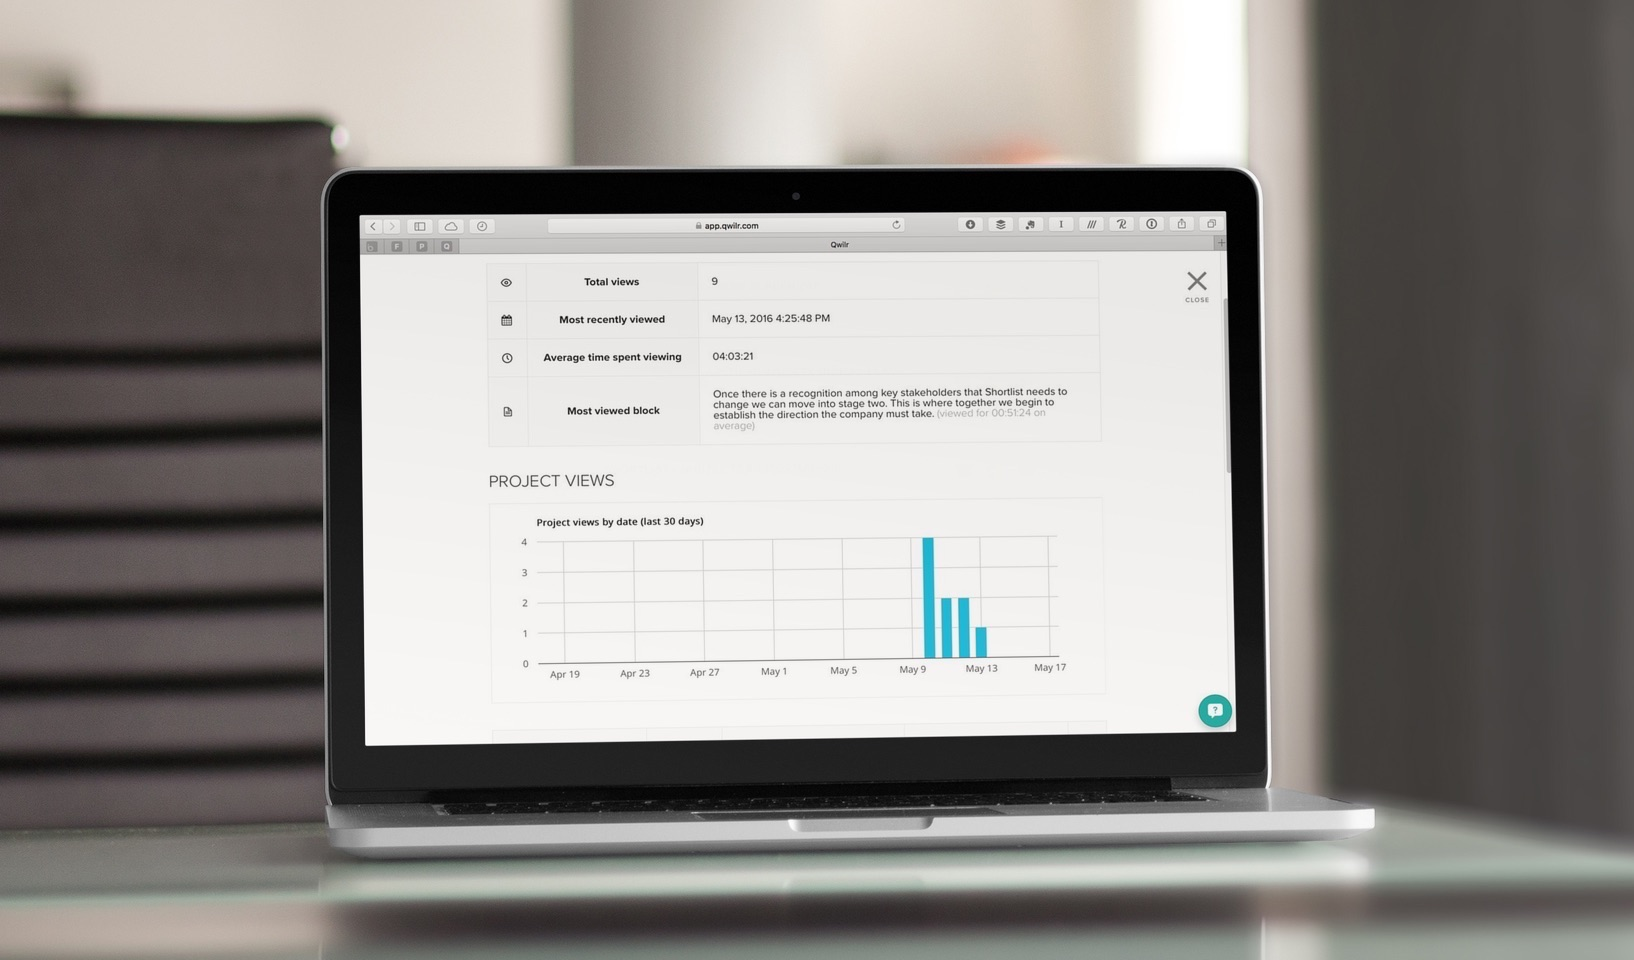 Having detailed analytics on a proposal makes a huge difference.